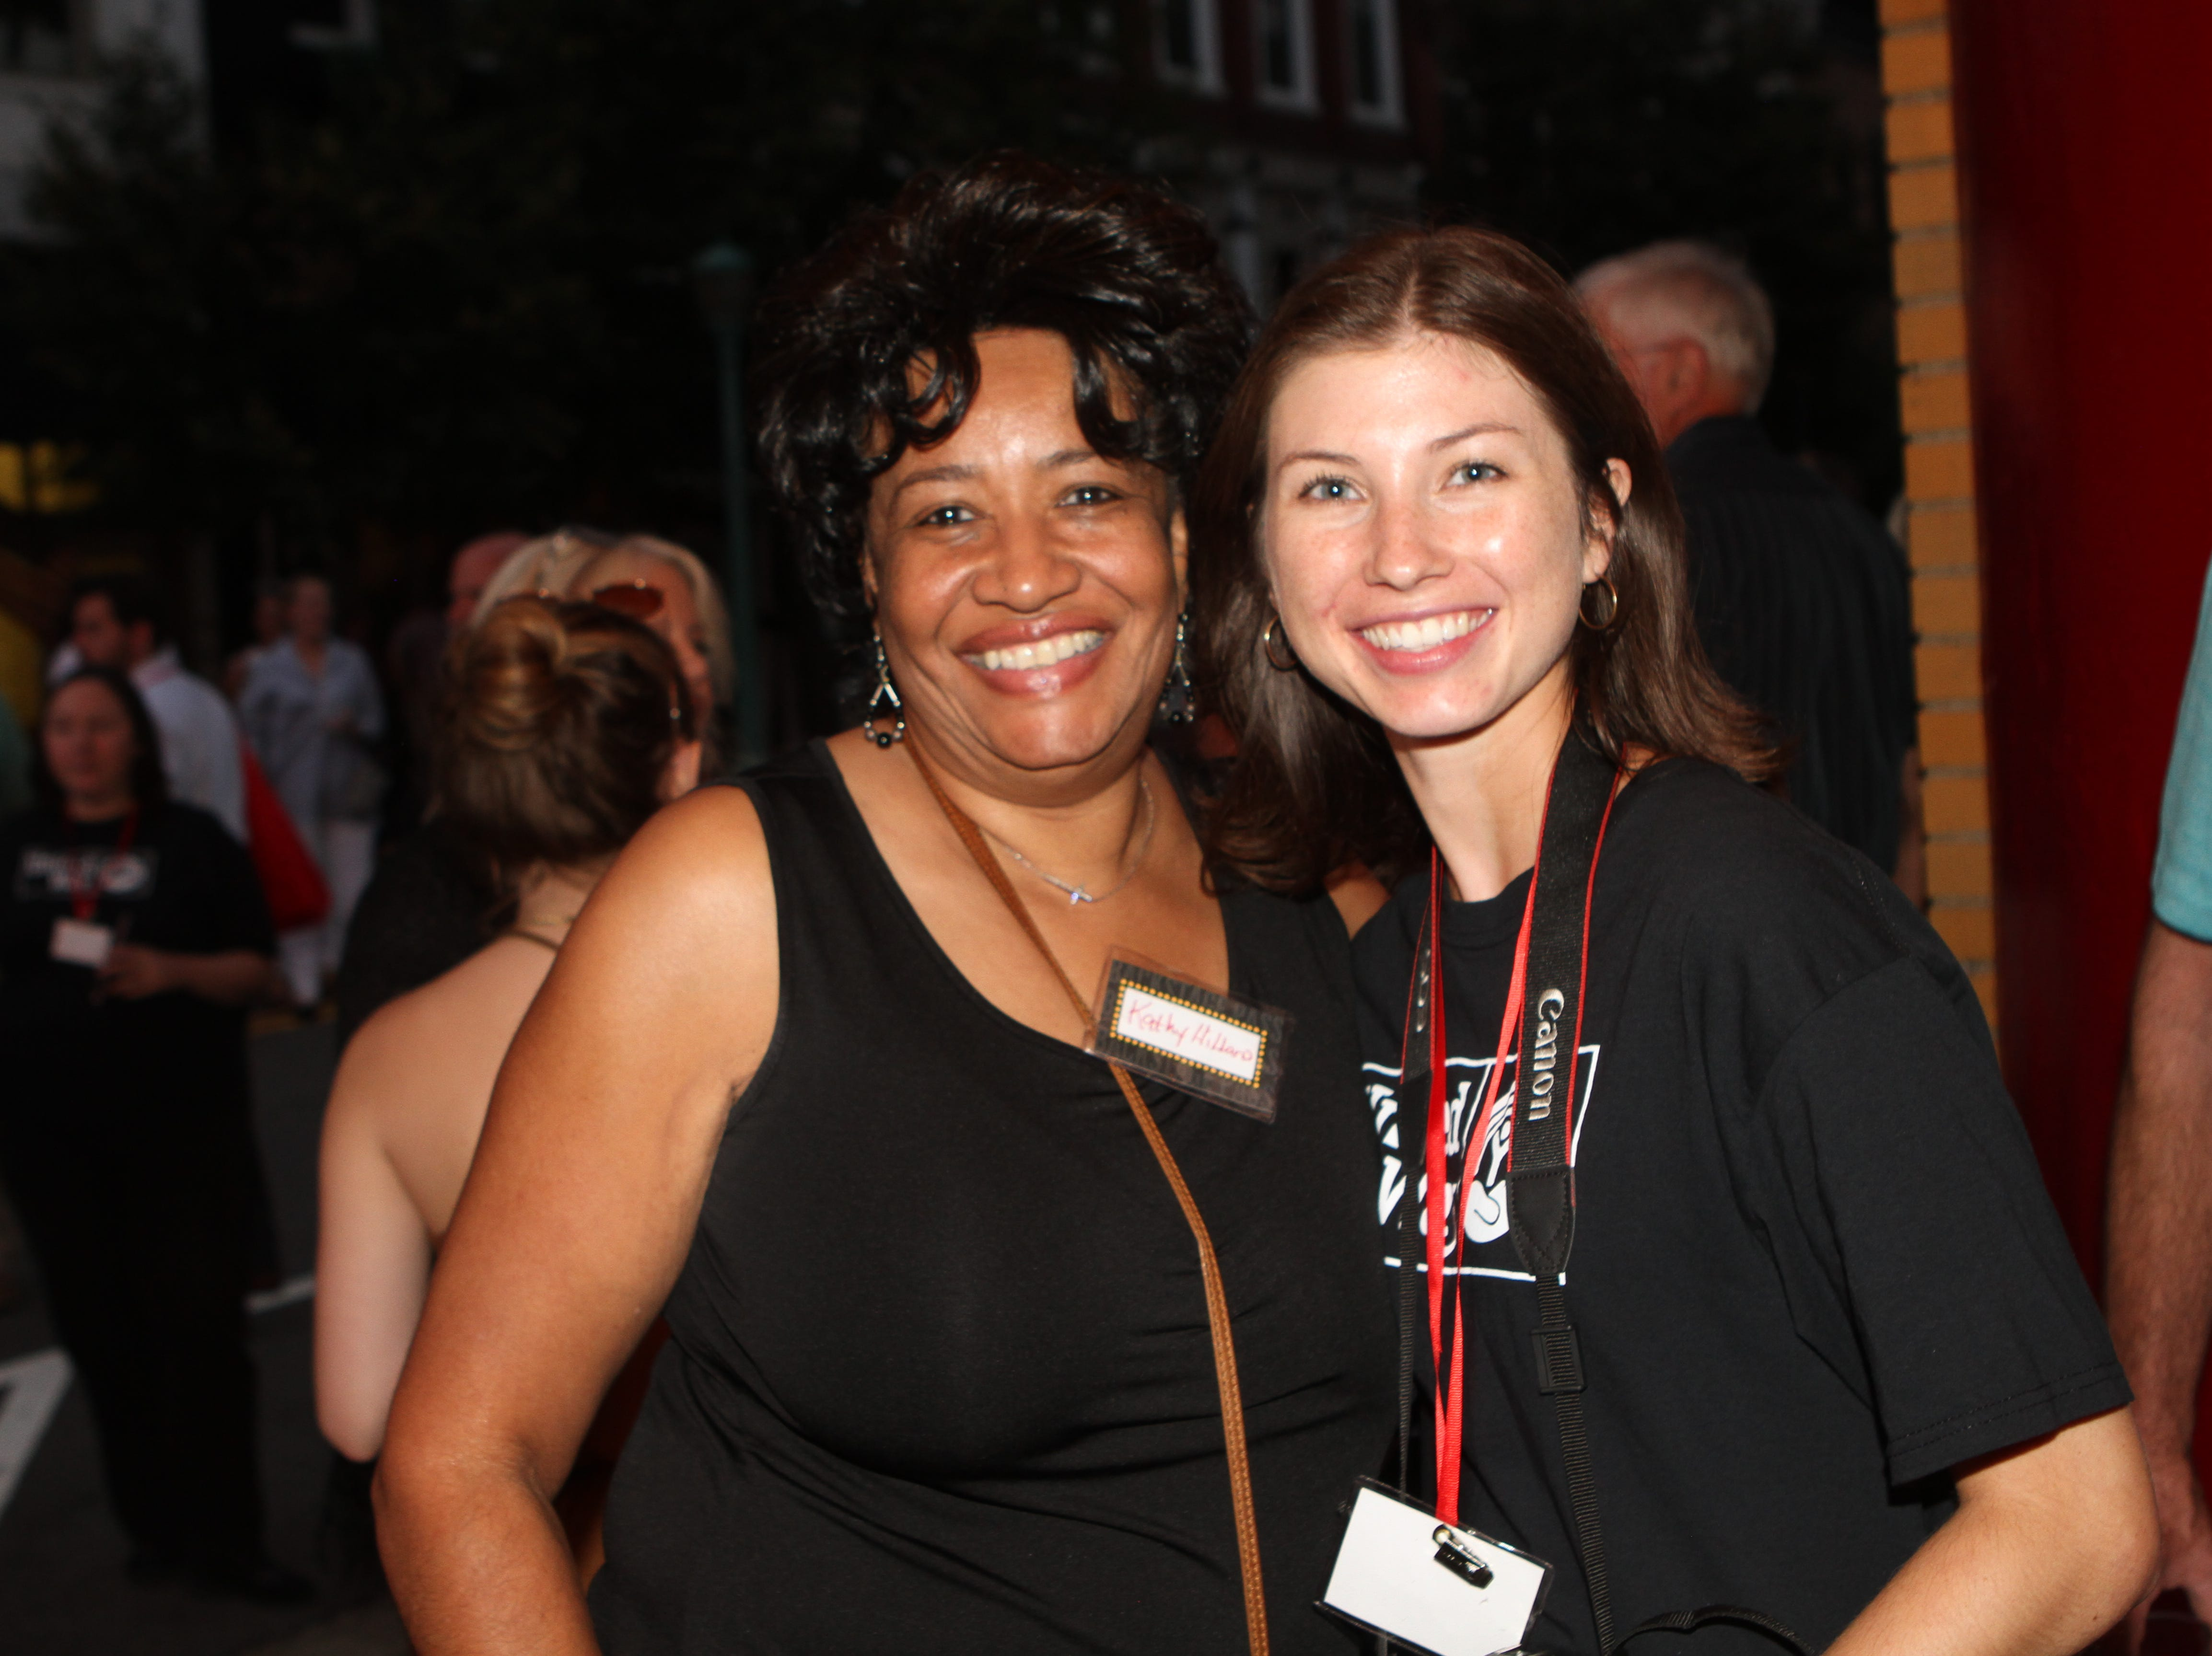 Cathy Hillard and Sarah Wood at the Roxy Regional Theatre for the United Way 2018 campaign fundraising event Thursday night.